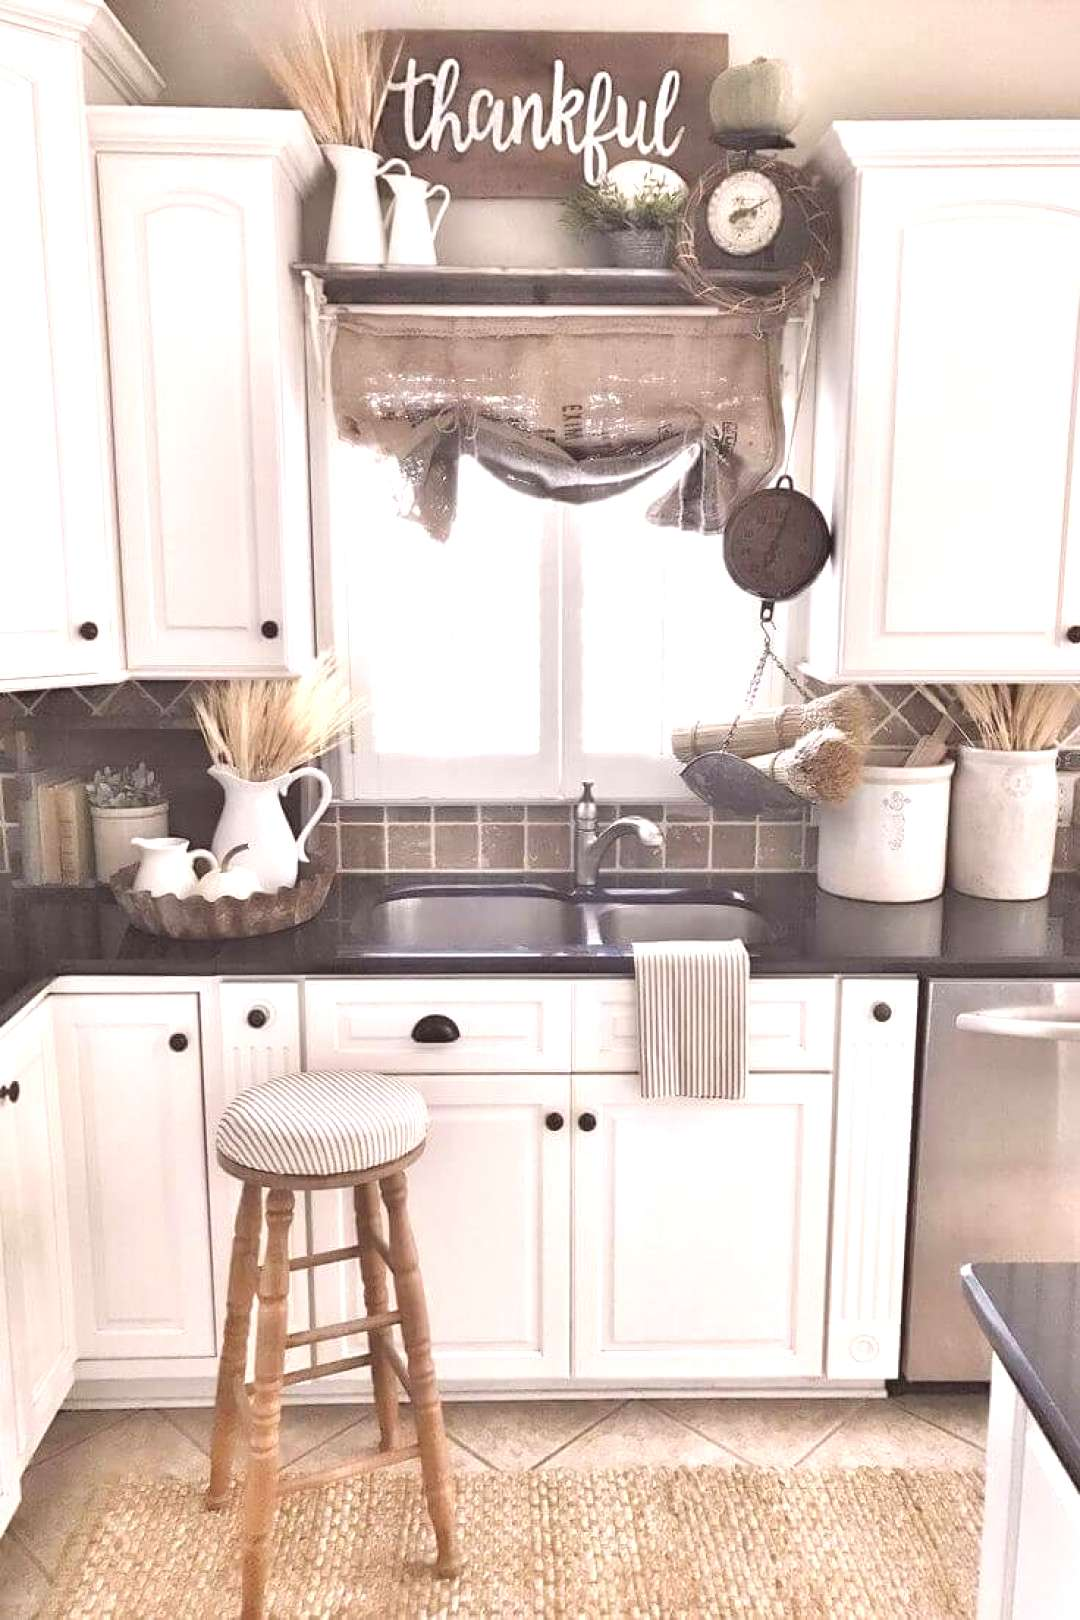 21+ Popular Farmhouse Kitchen Cabinets Decor And Design Ideas To Fuel Your Remodel 21+ Popular Farm